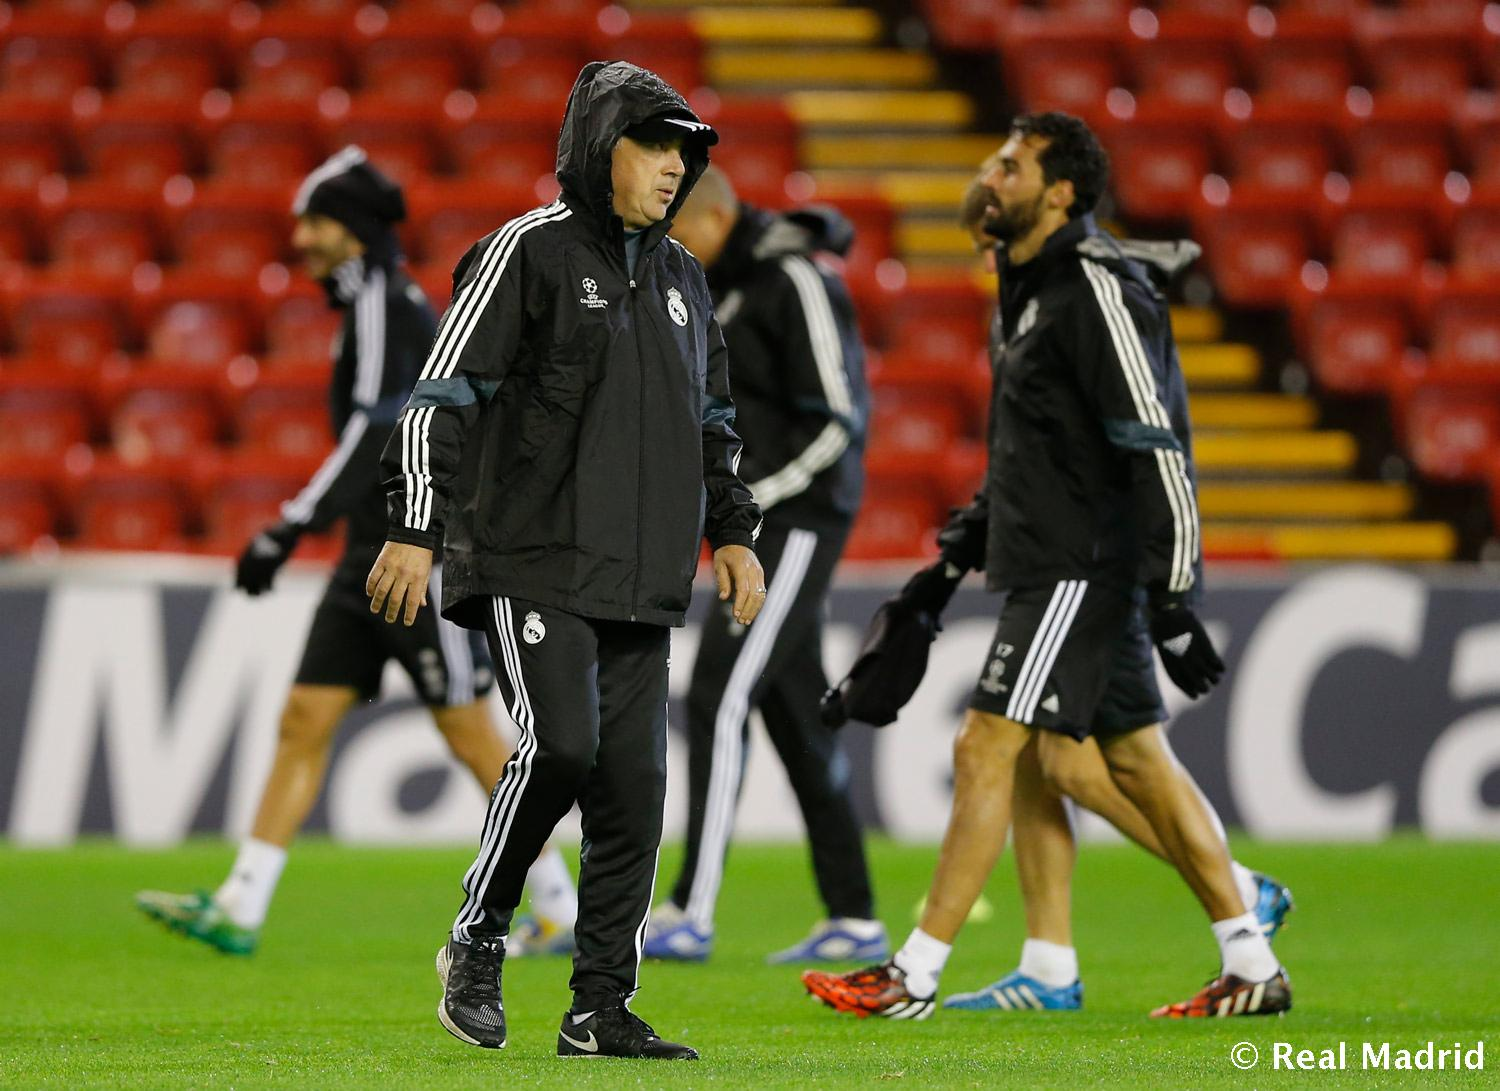 Real Madrid - Entrenamiento del Real Madrid en Anfield - 21-10-2014